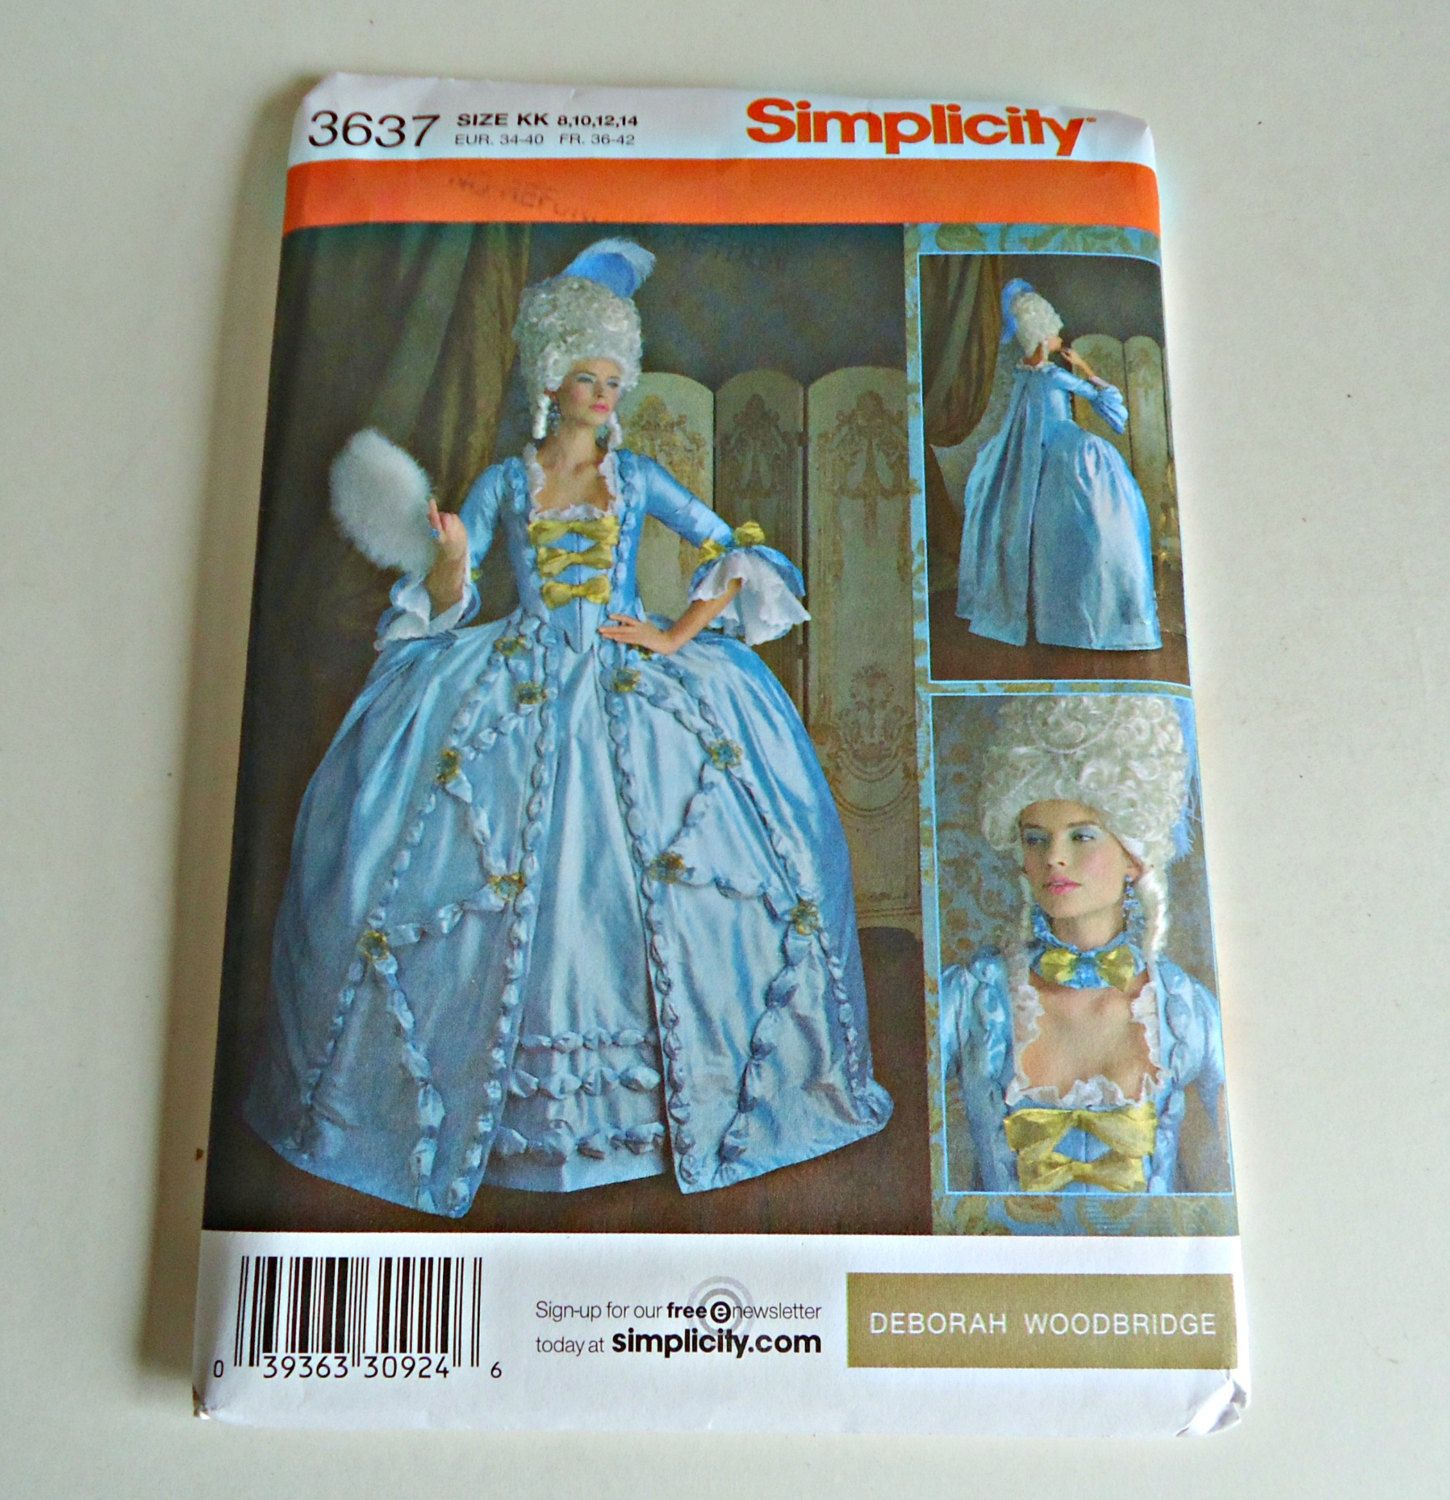 Pattern Simplicity 3637 Misses 18th Century French Revolution Costume Size 8 10 12 14 Adult Uncut  sc 1 st  Pinterest & Pattern Simplicity 3637 Misses 18th Century French Revolution ...